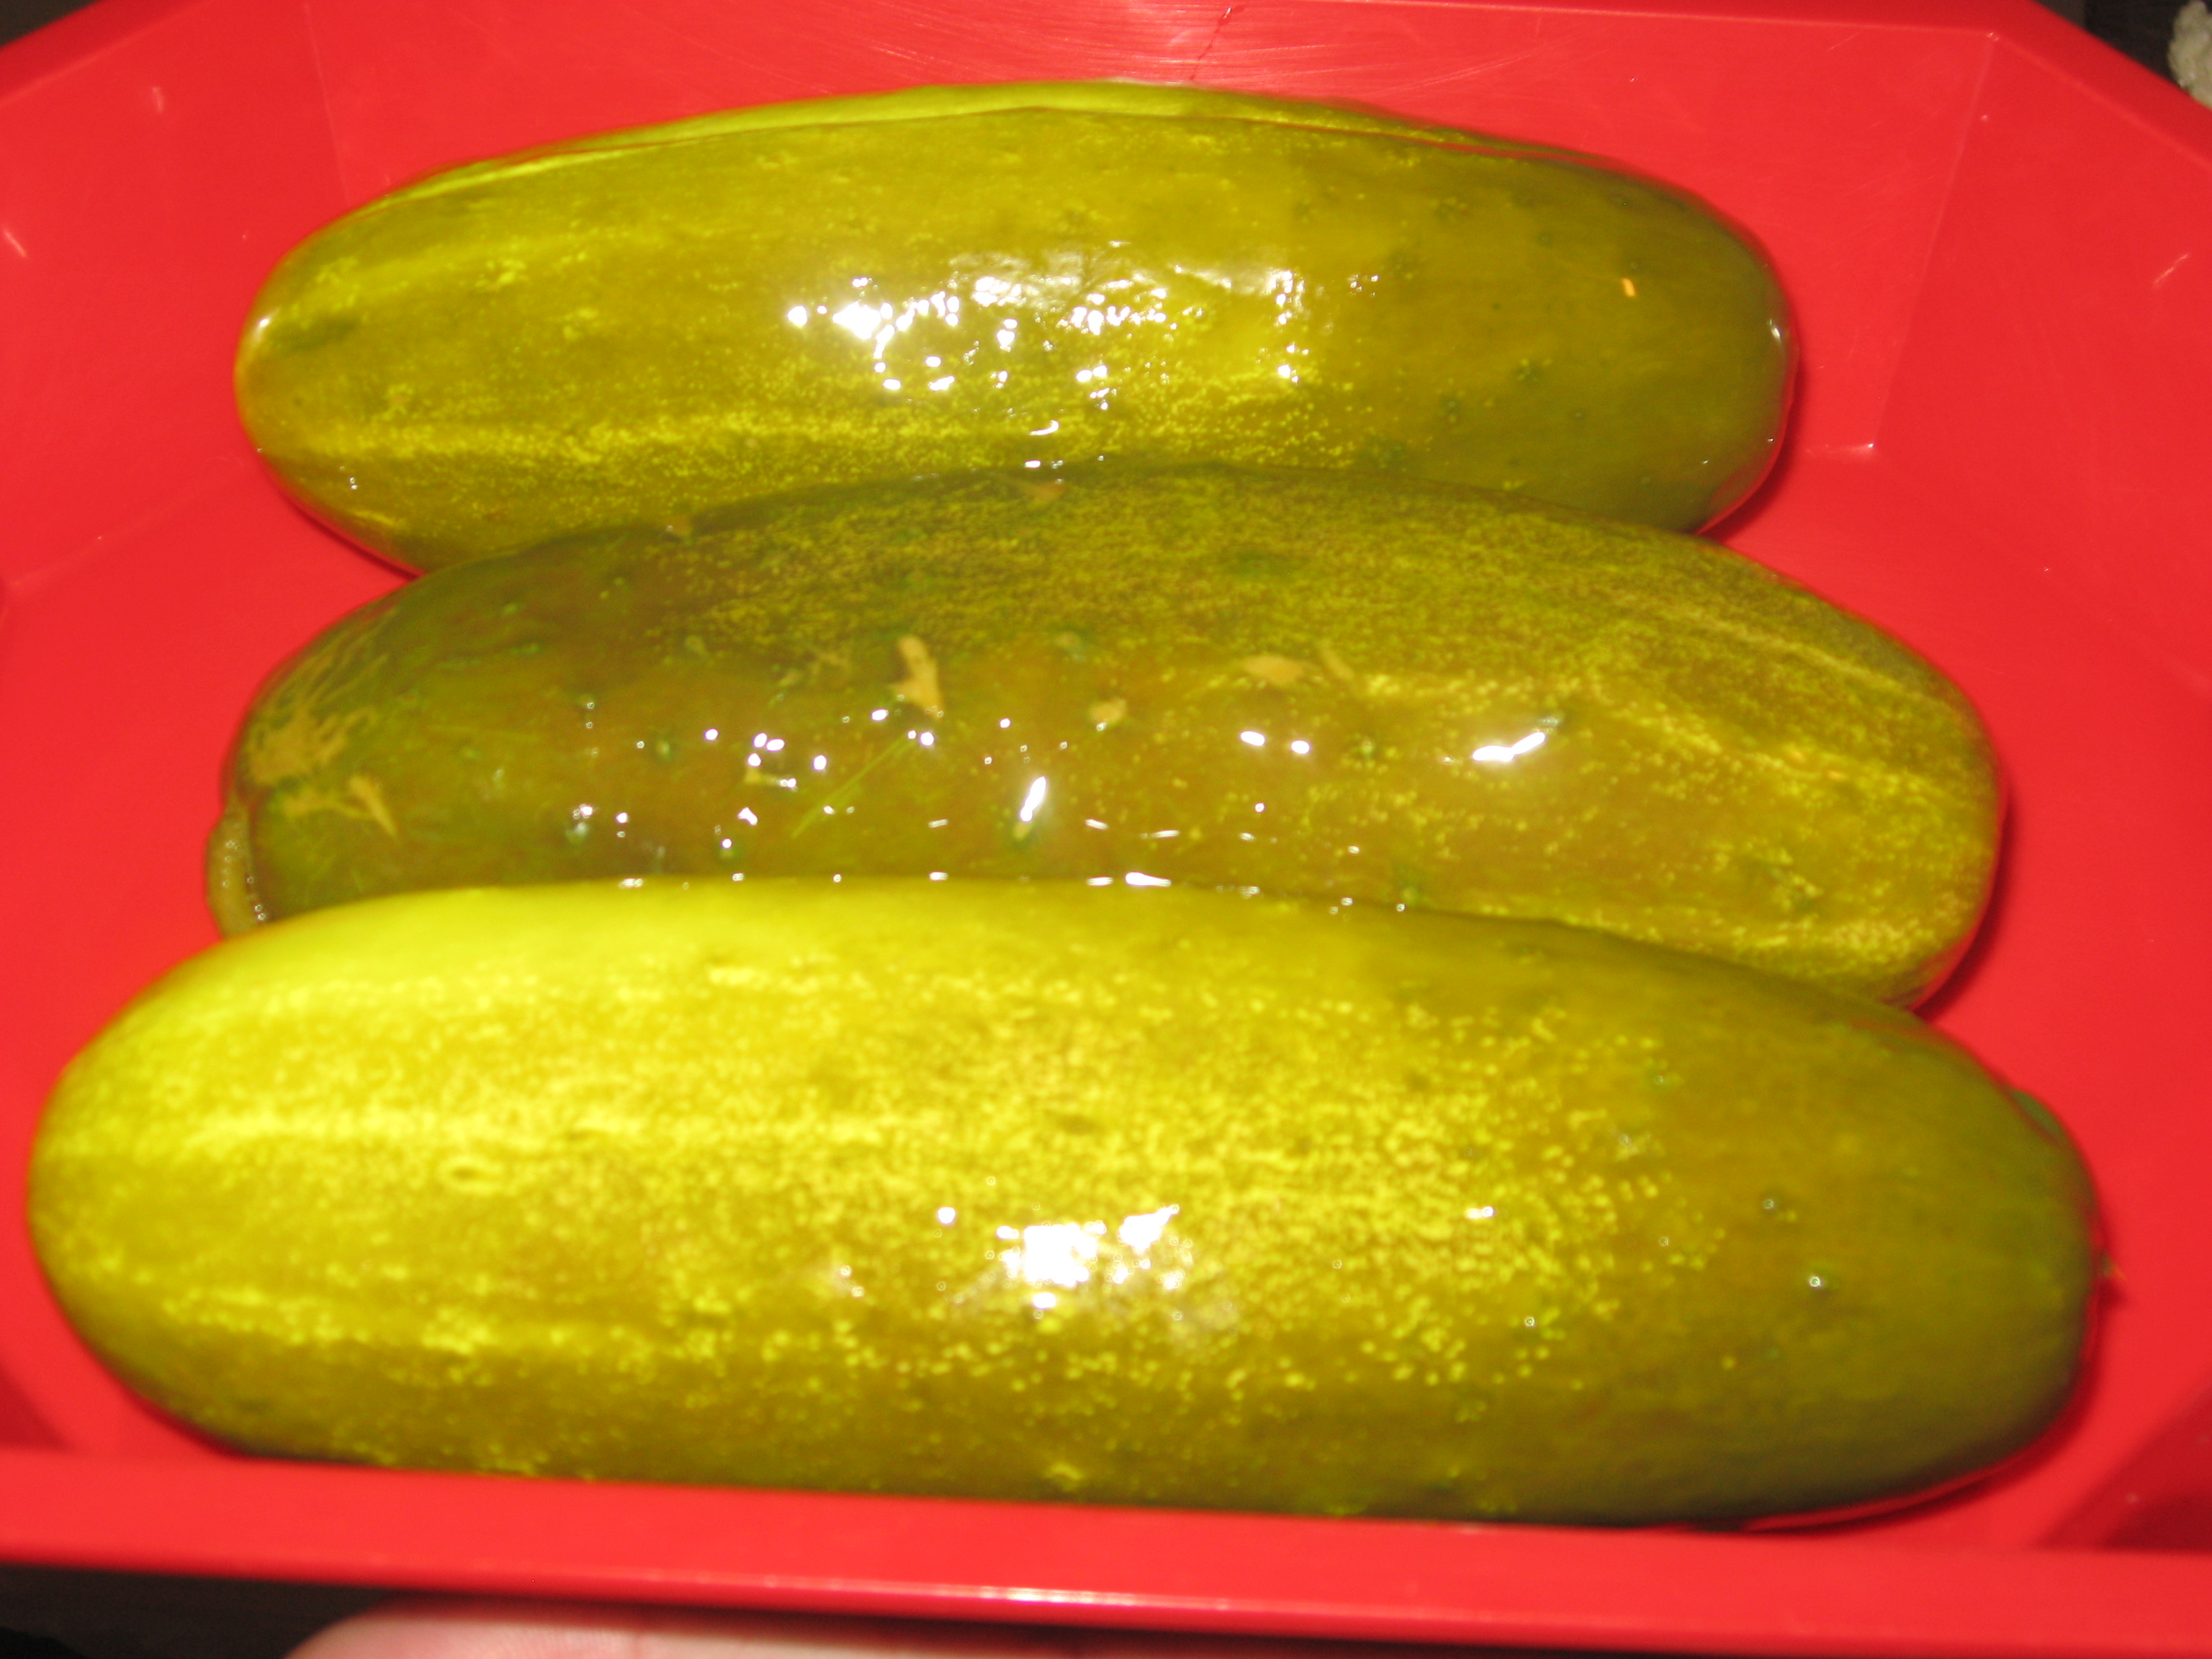 Whole Deli Pickle